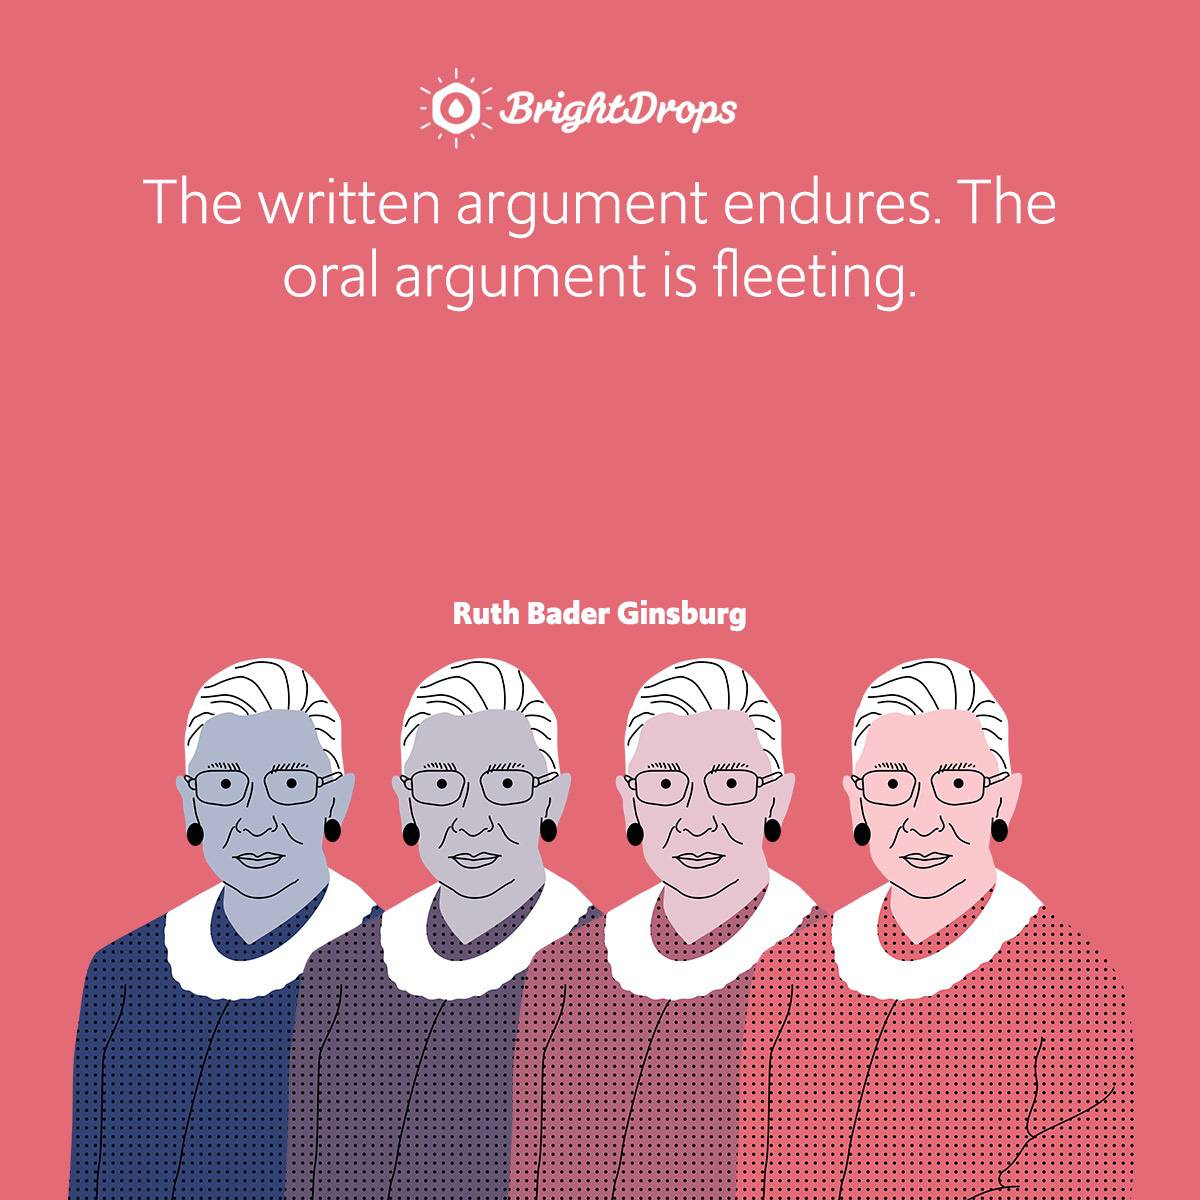 The written argument endures. The oral argument is fleeting.